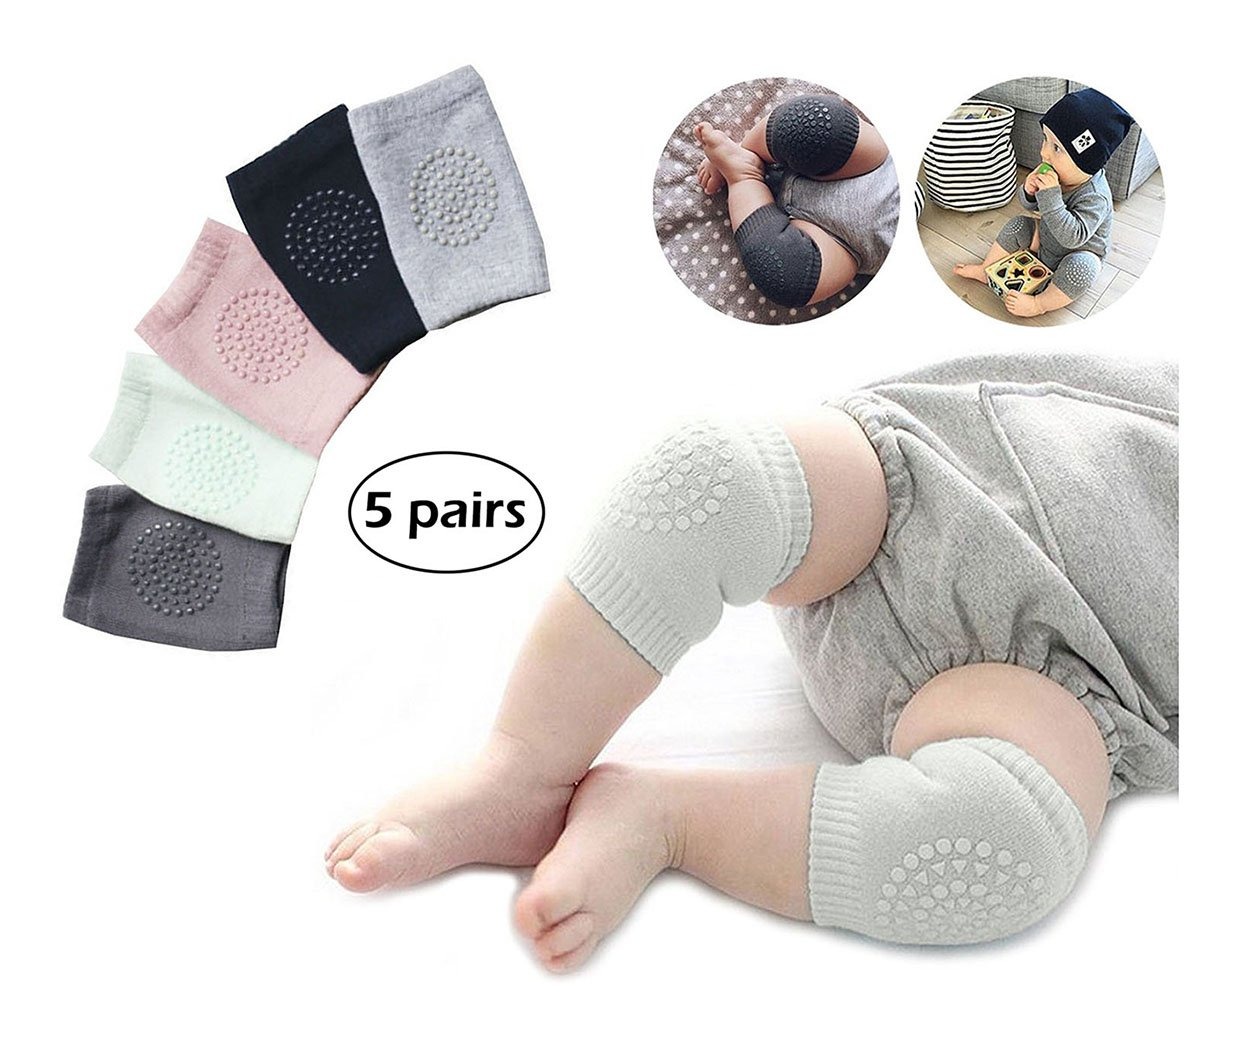 5 Pair Baby Knee Pads, Crawling Anti-Slip Knee for Unisex Baby Toddlers by CASAFE